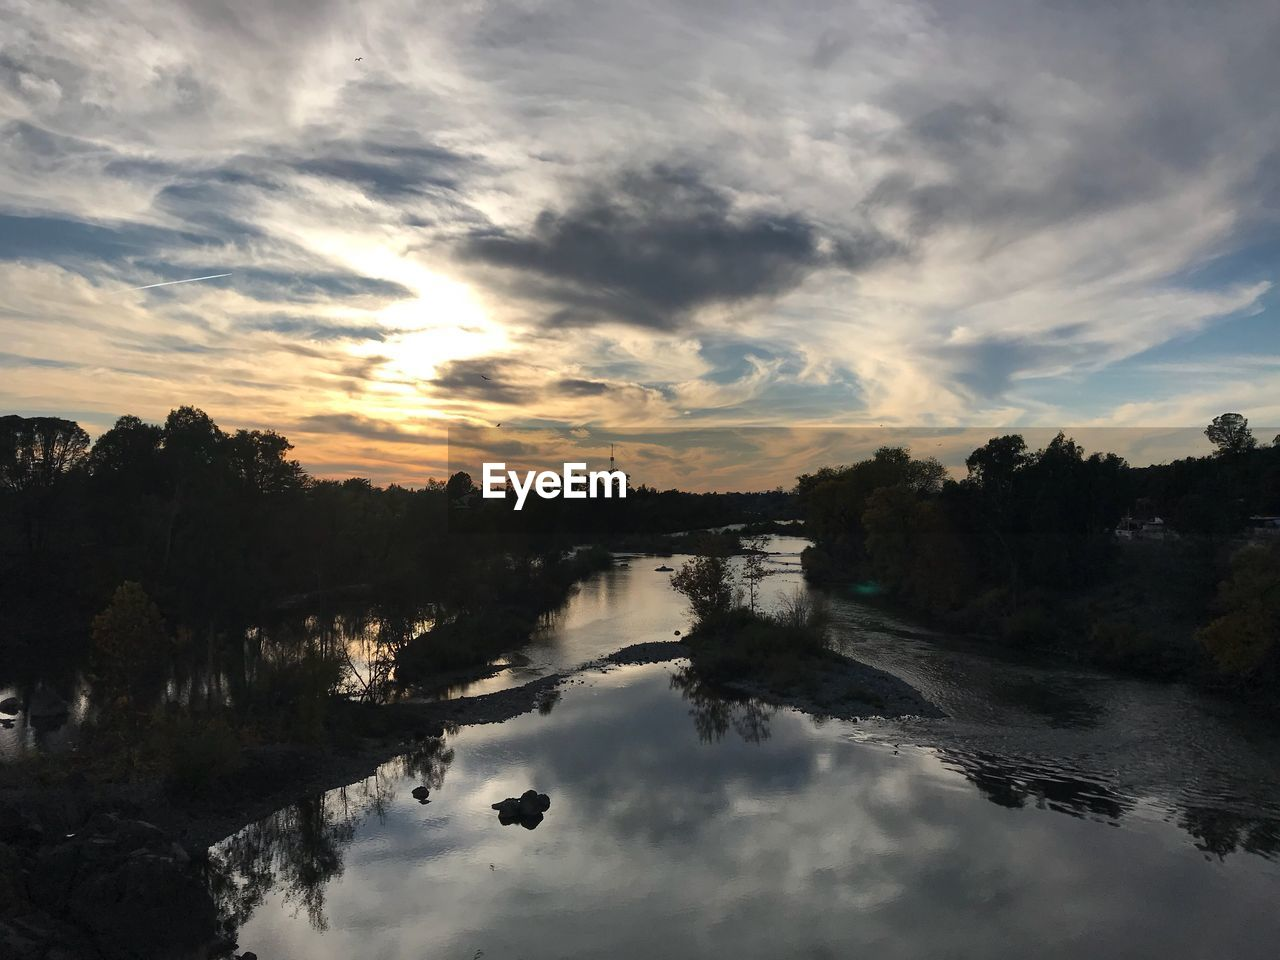 cloud - sky, reflection, water, sky, sunset, nature, no people, beauty in nature, scenics, tree, tranquil scene, tranquility, outdoors, day